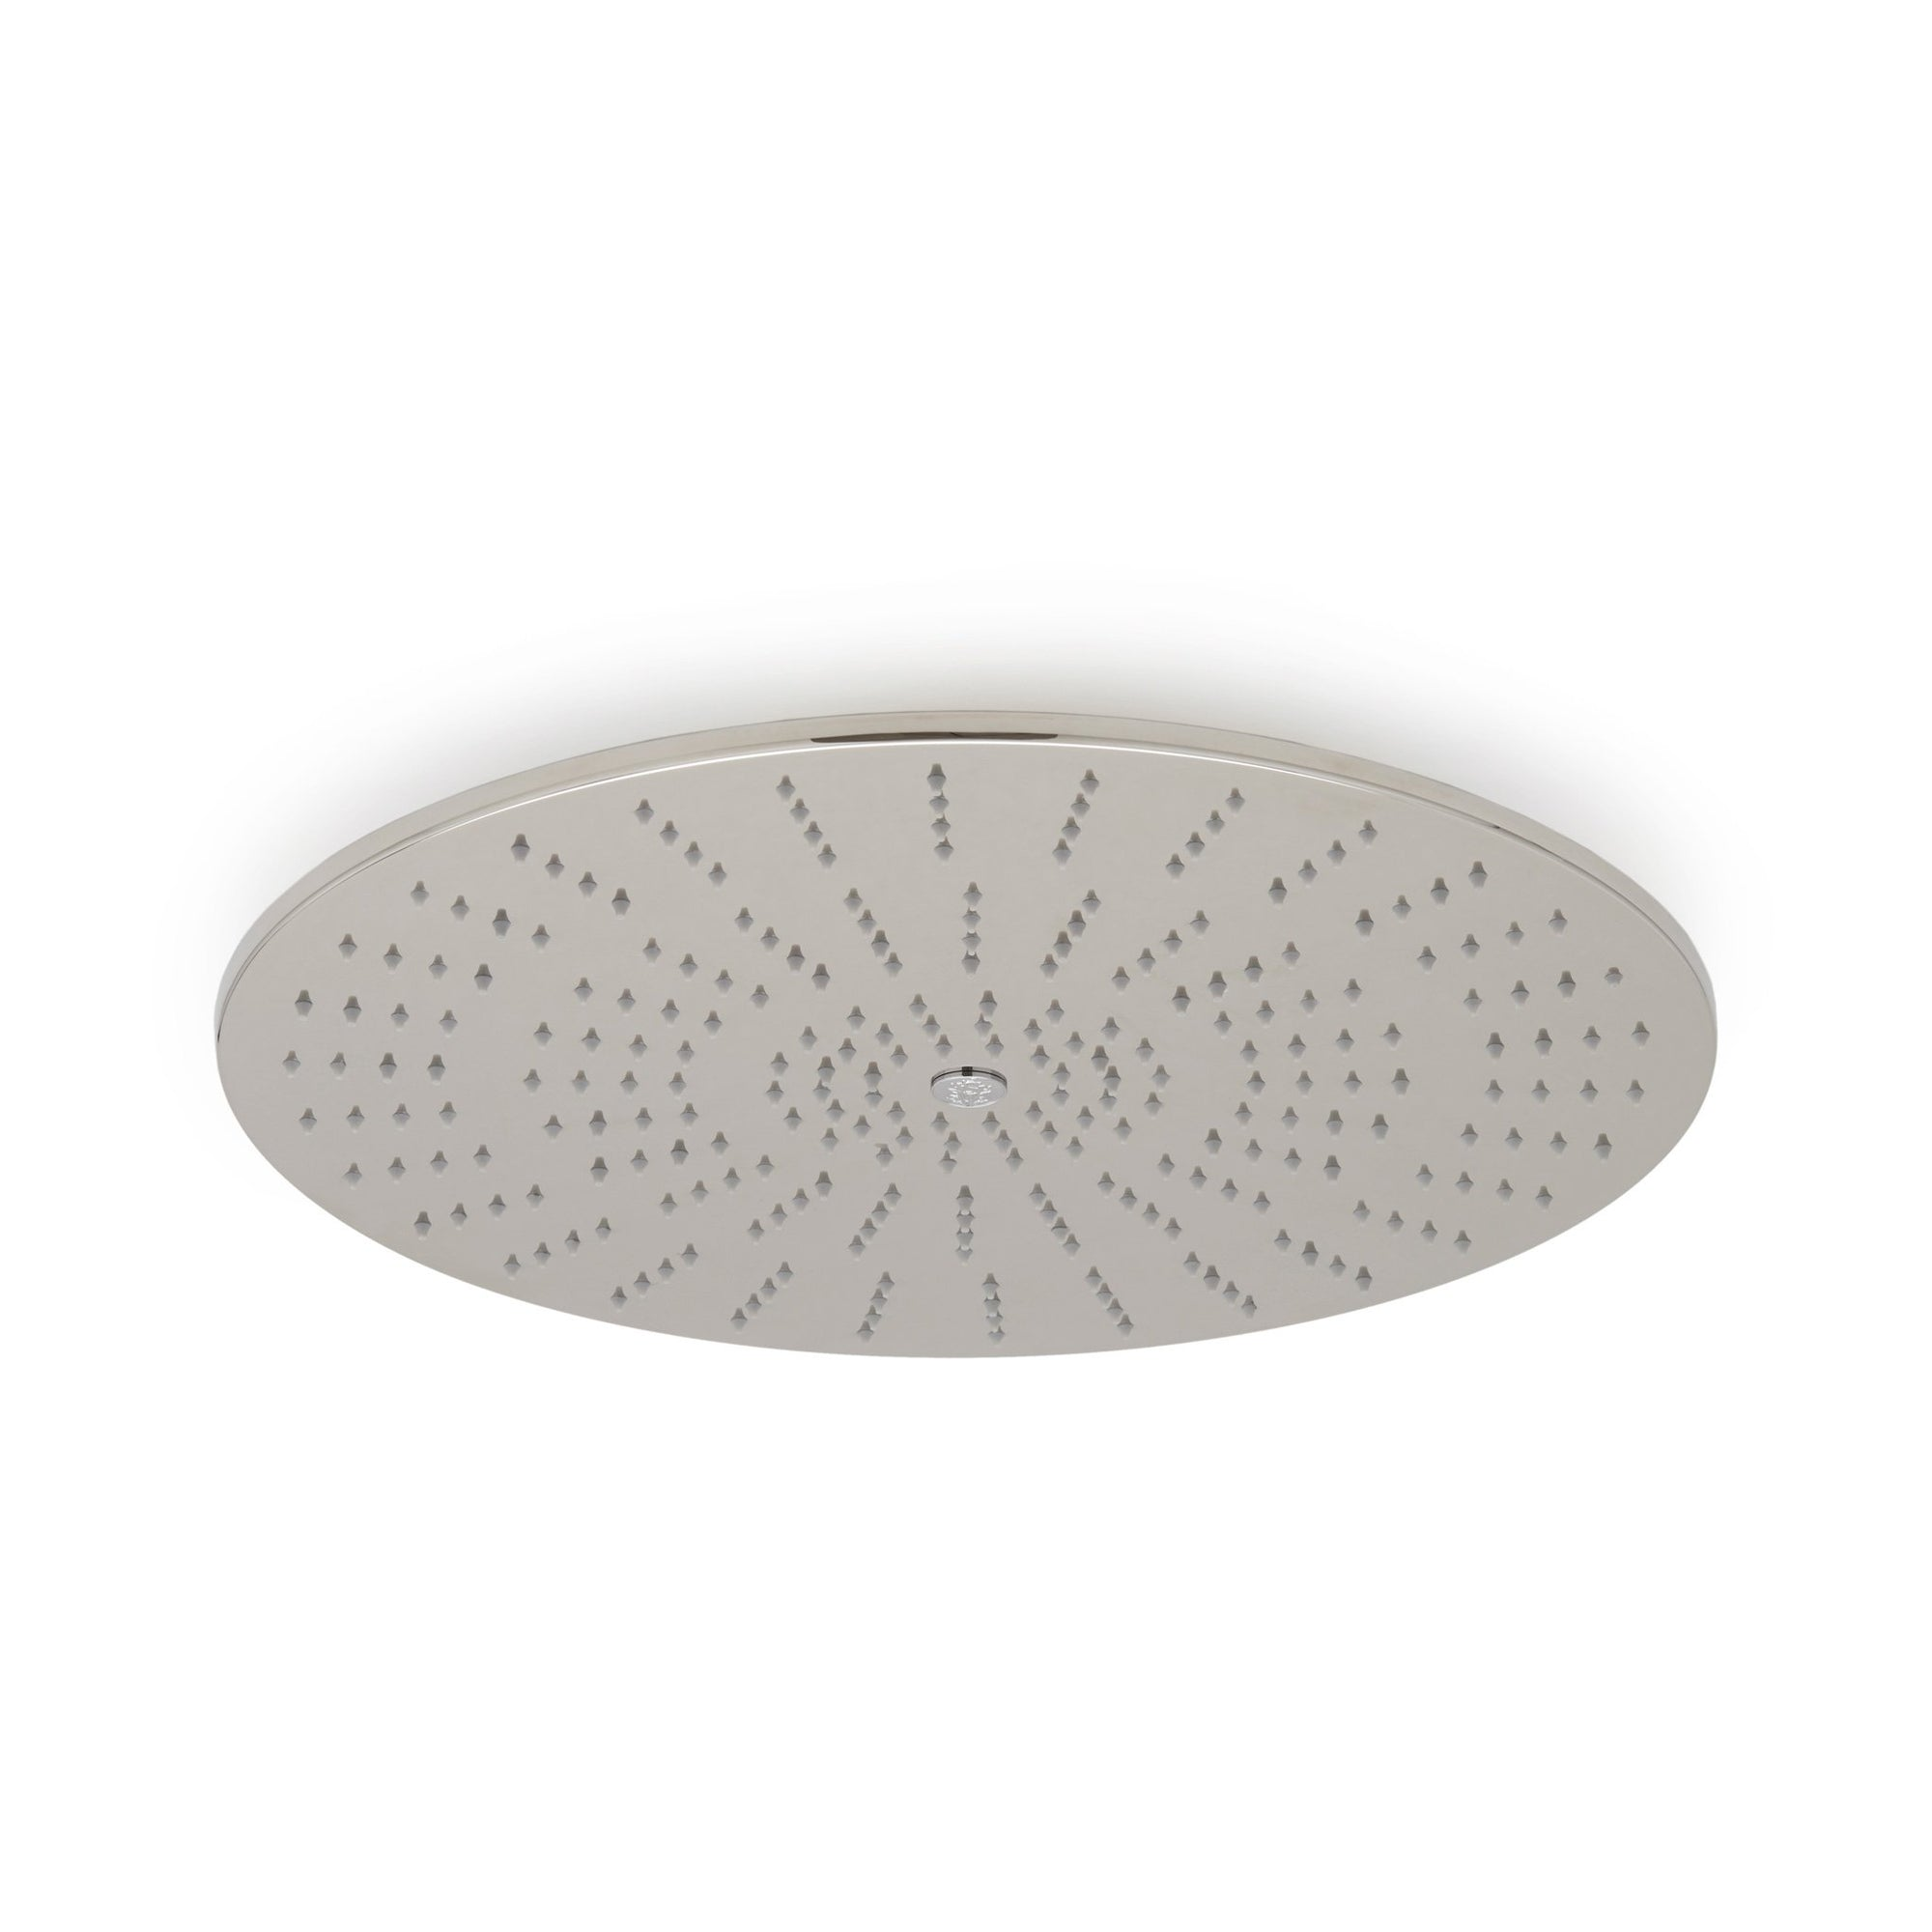 101CSHD-19RD-PN Sherle Wagner International Modern Round Ceiling Rain Plate in Polished Nickel metal finish